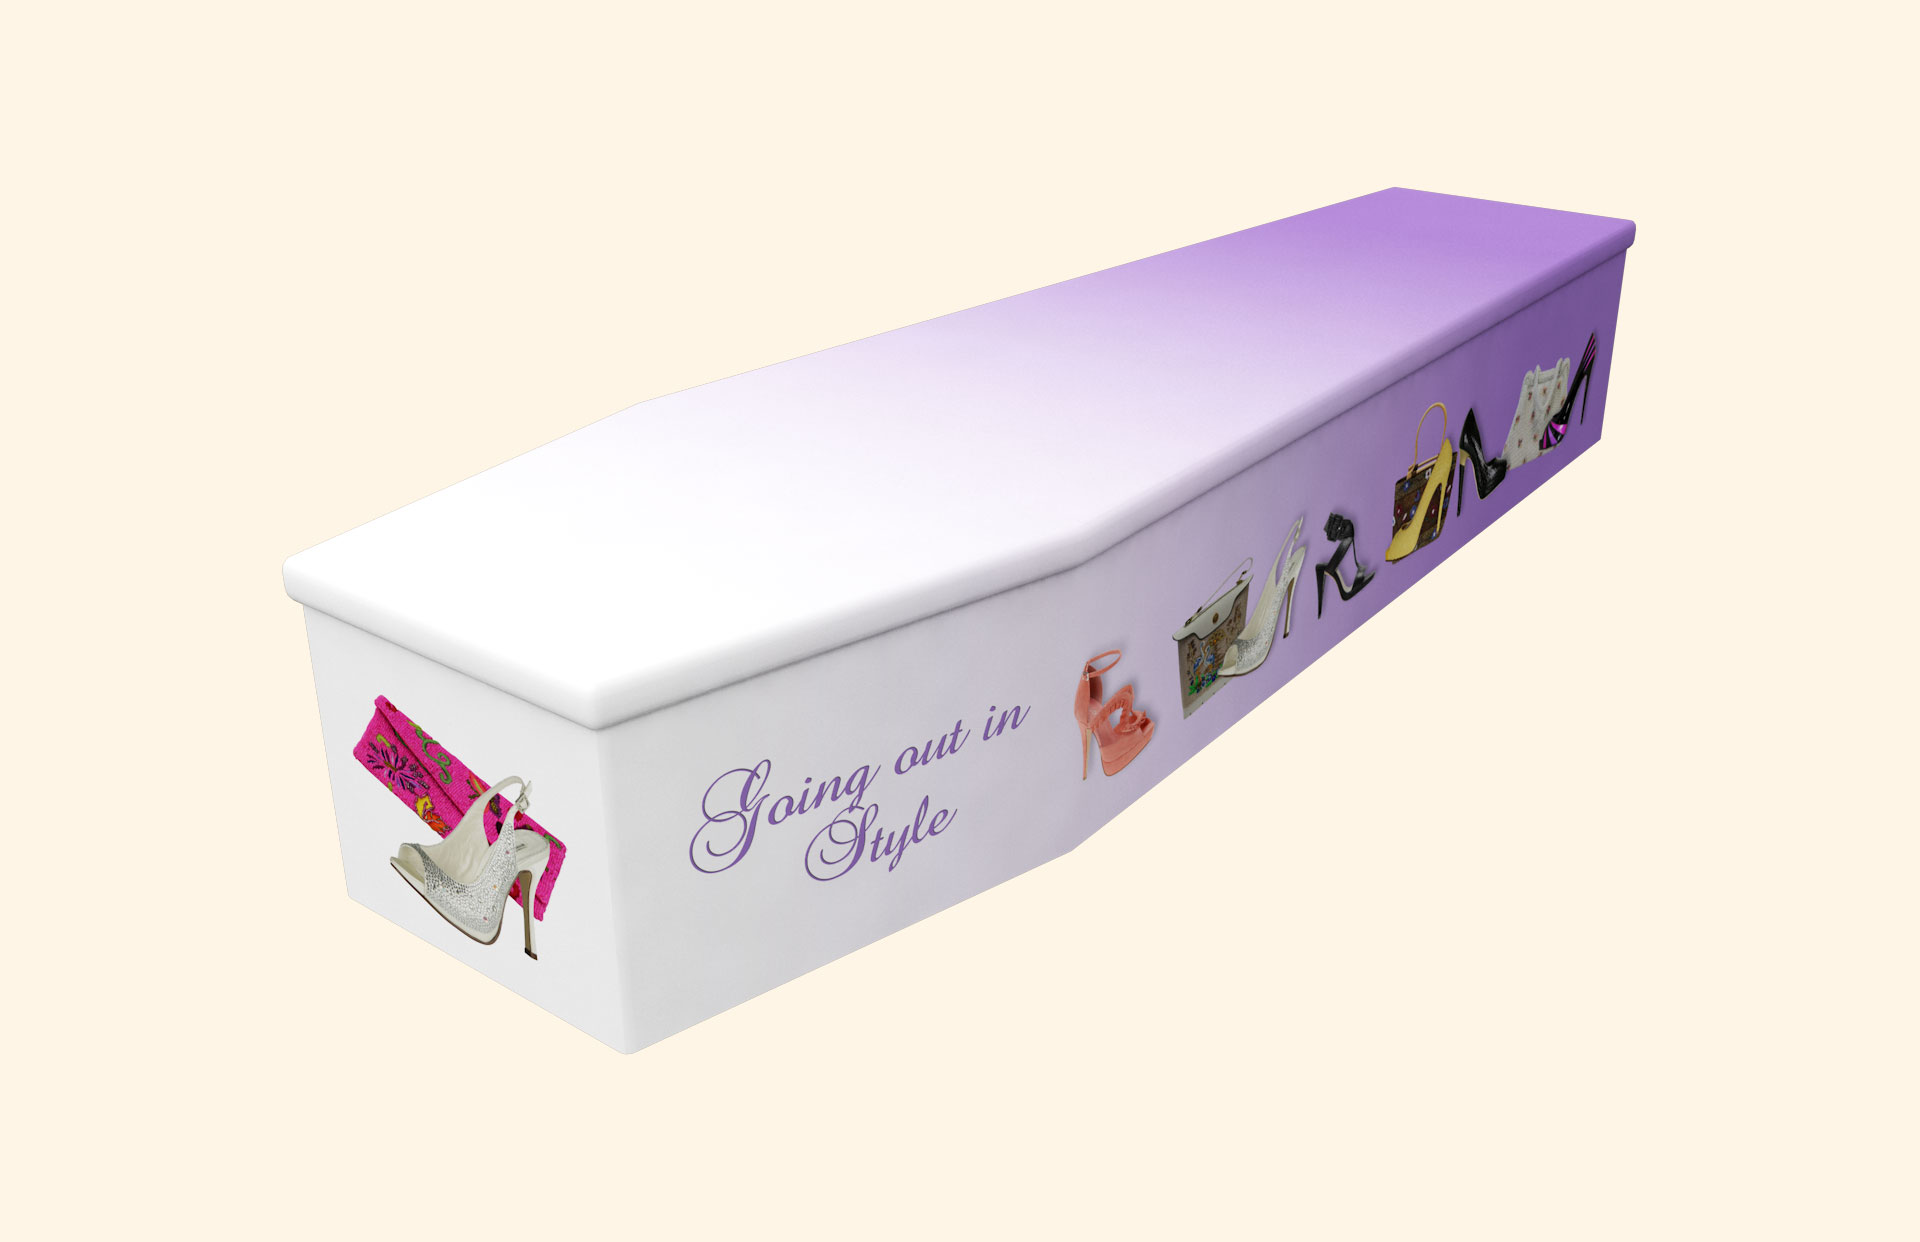 Going out in Style lilac Cardboard coffin